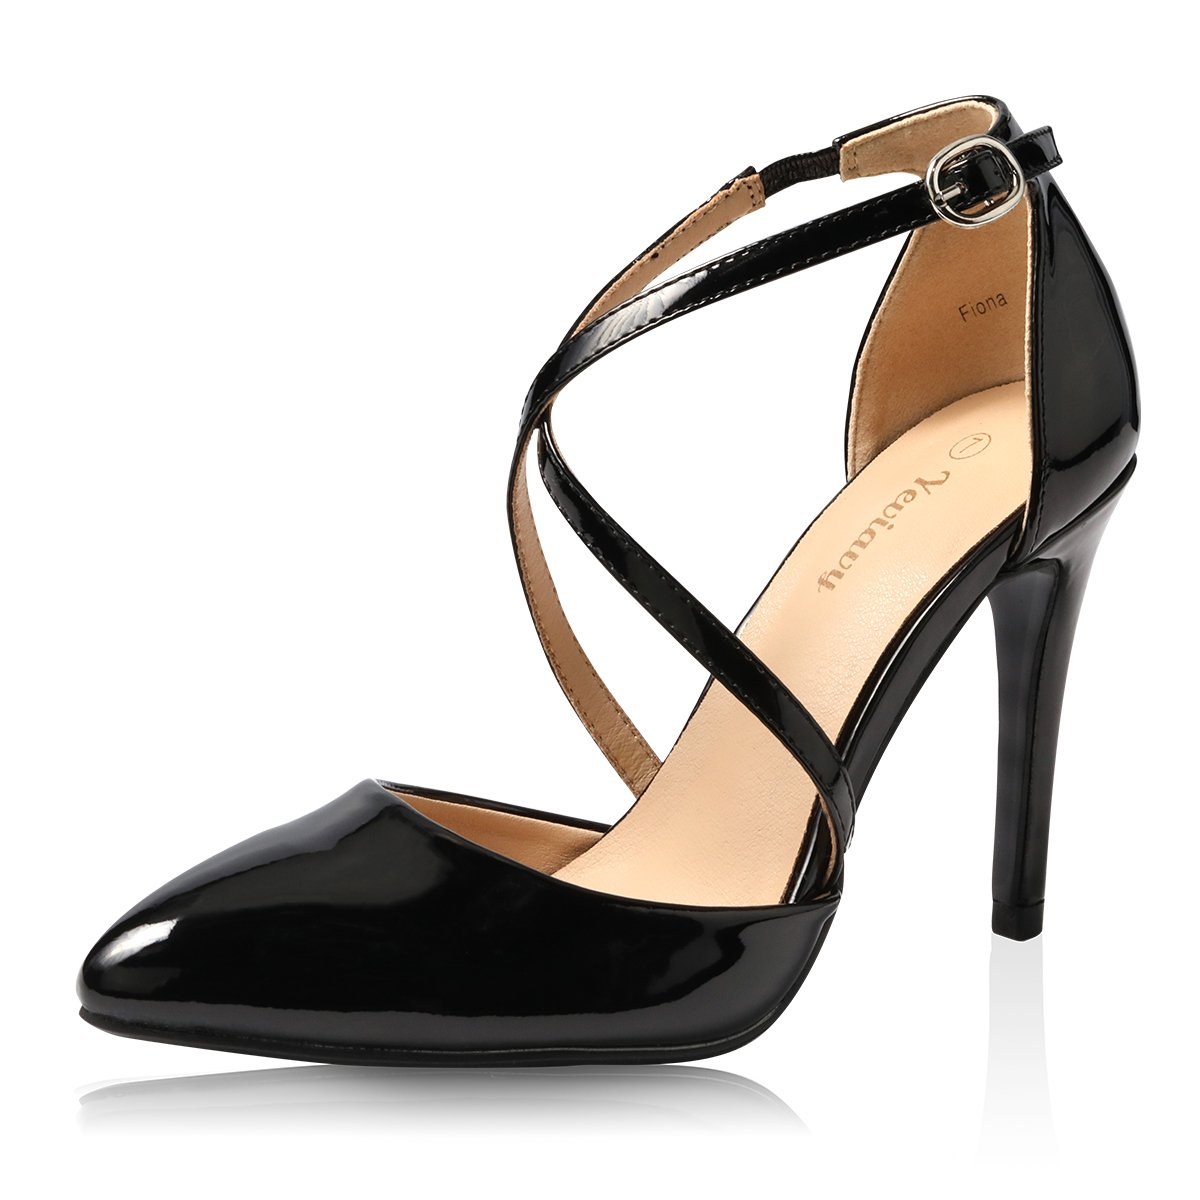 Yeviavy High Heels for Women Pumps Dress Pointed Toe Shoes Strappy Stiletto Buckle Closure D'Orsay Finona Black Patent 9